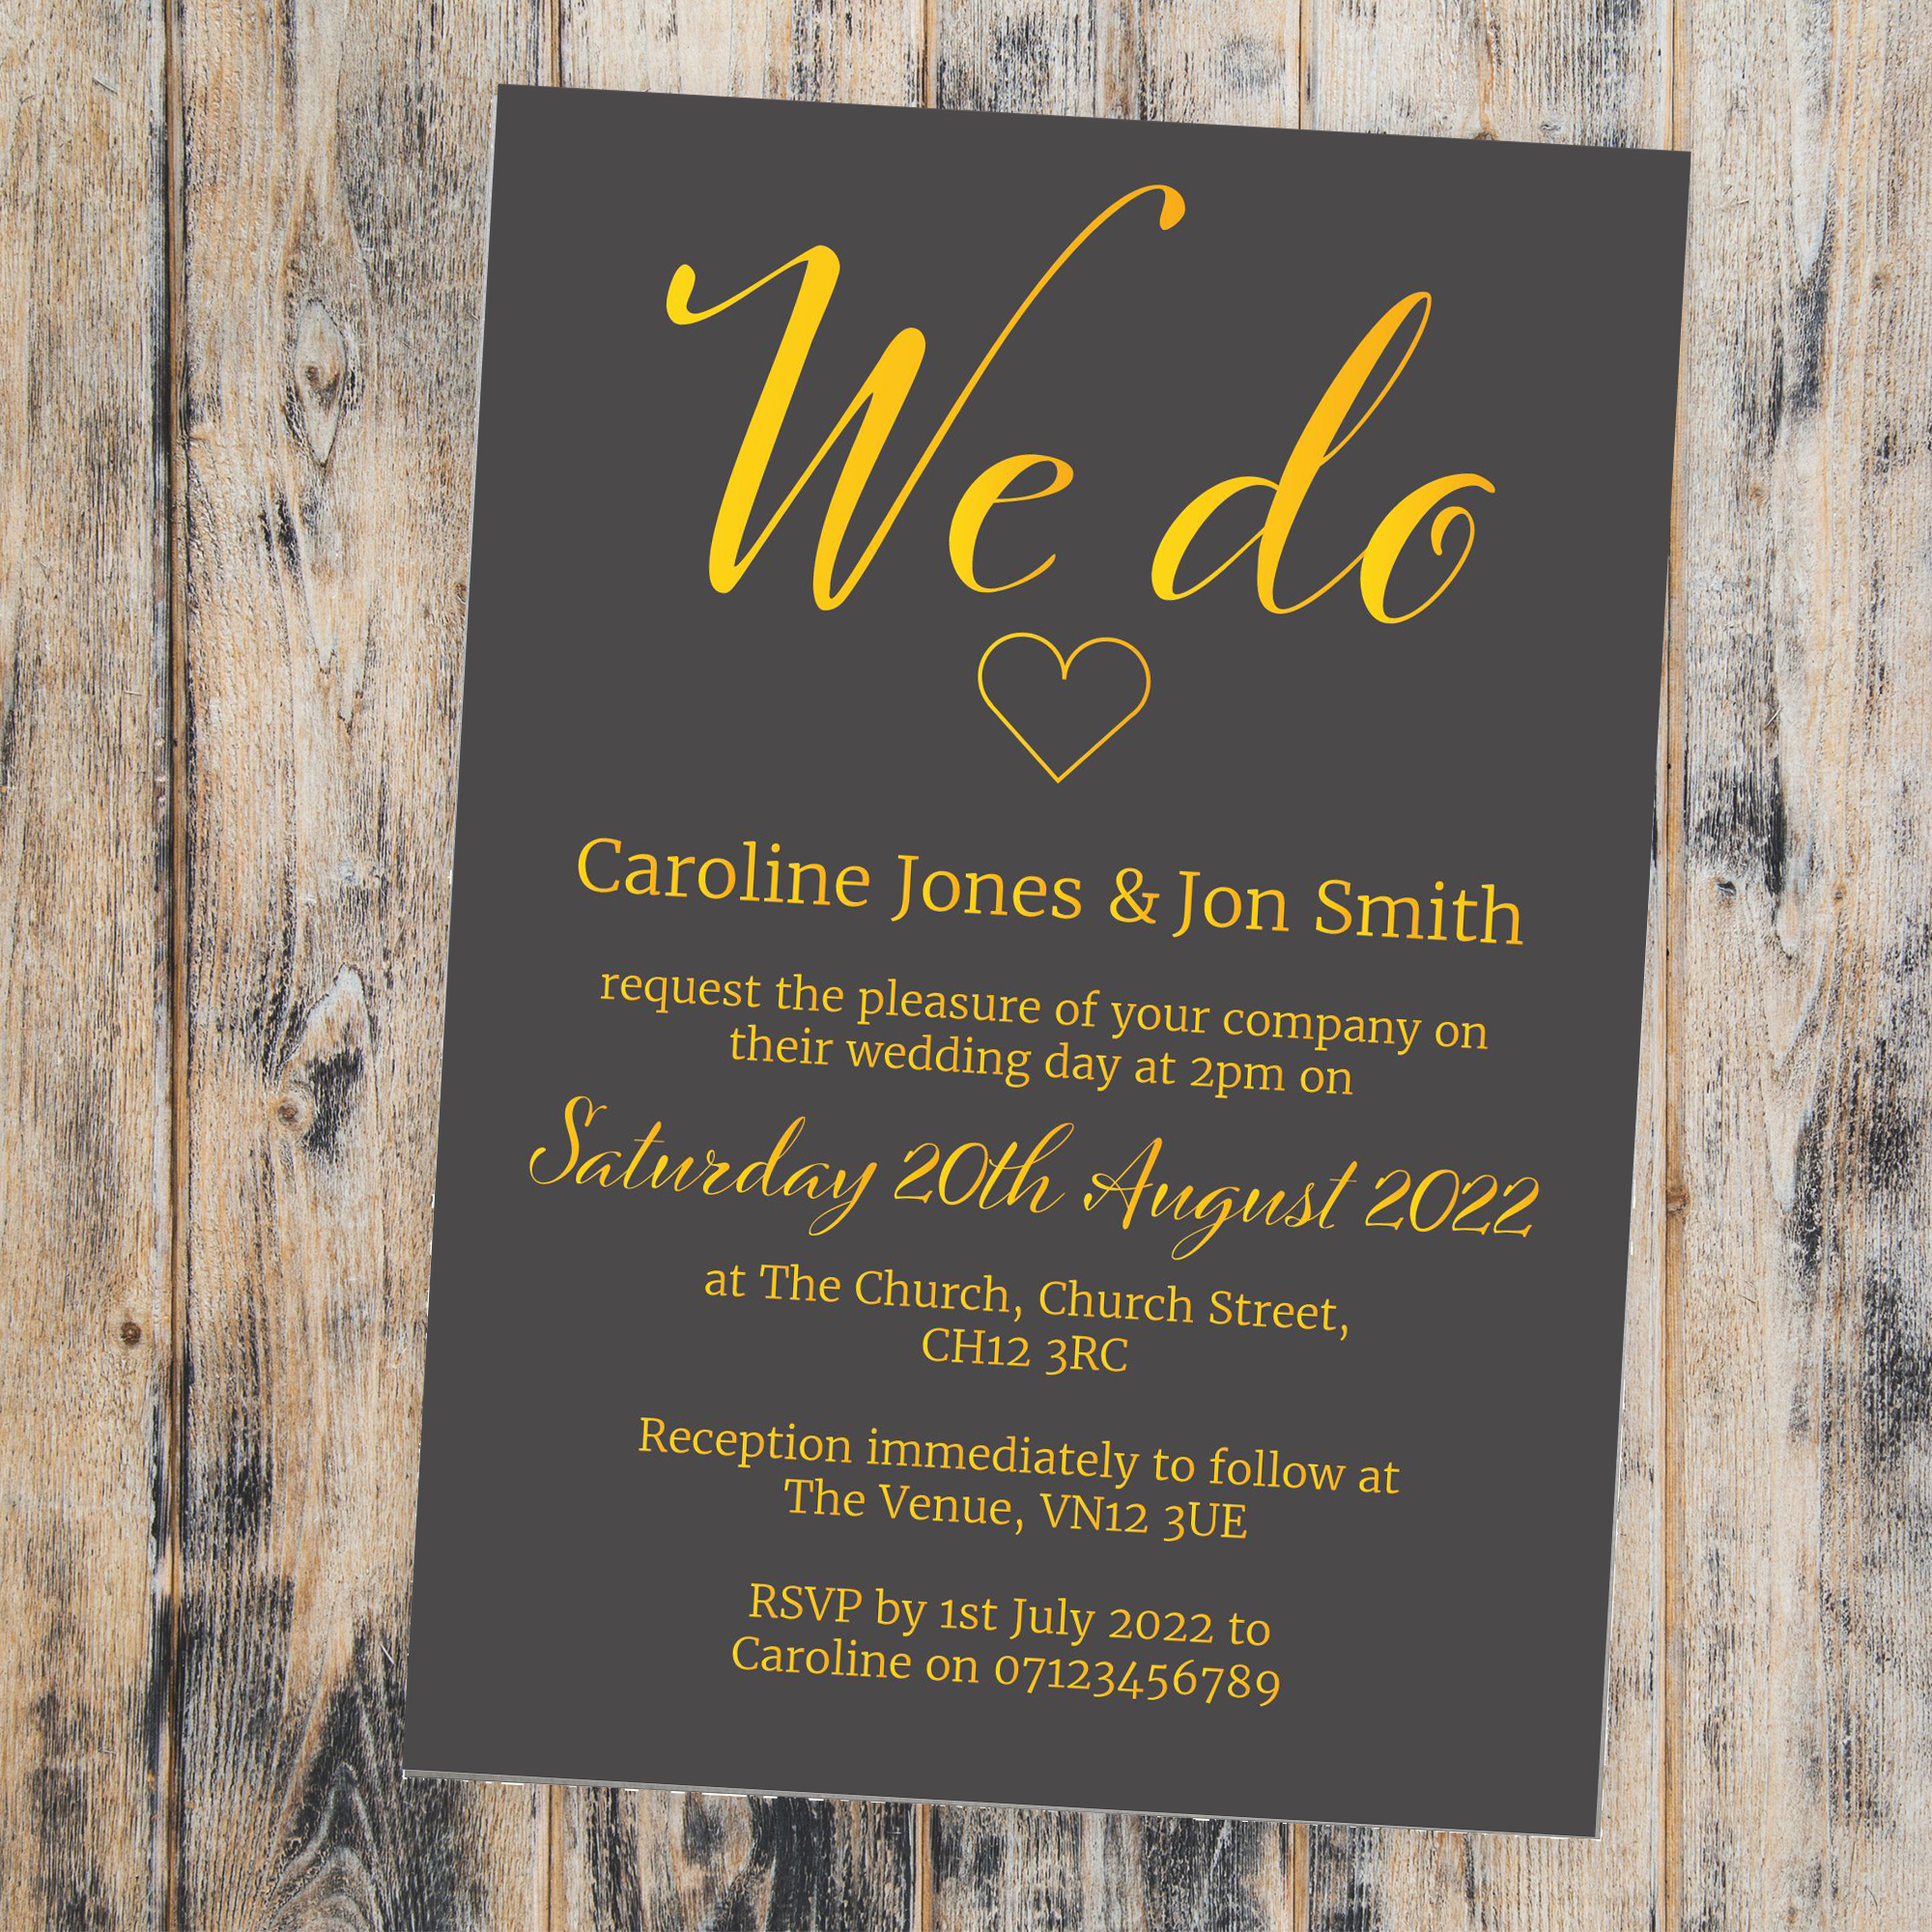 Grey & Gold Foil We Do